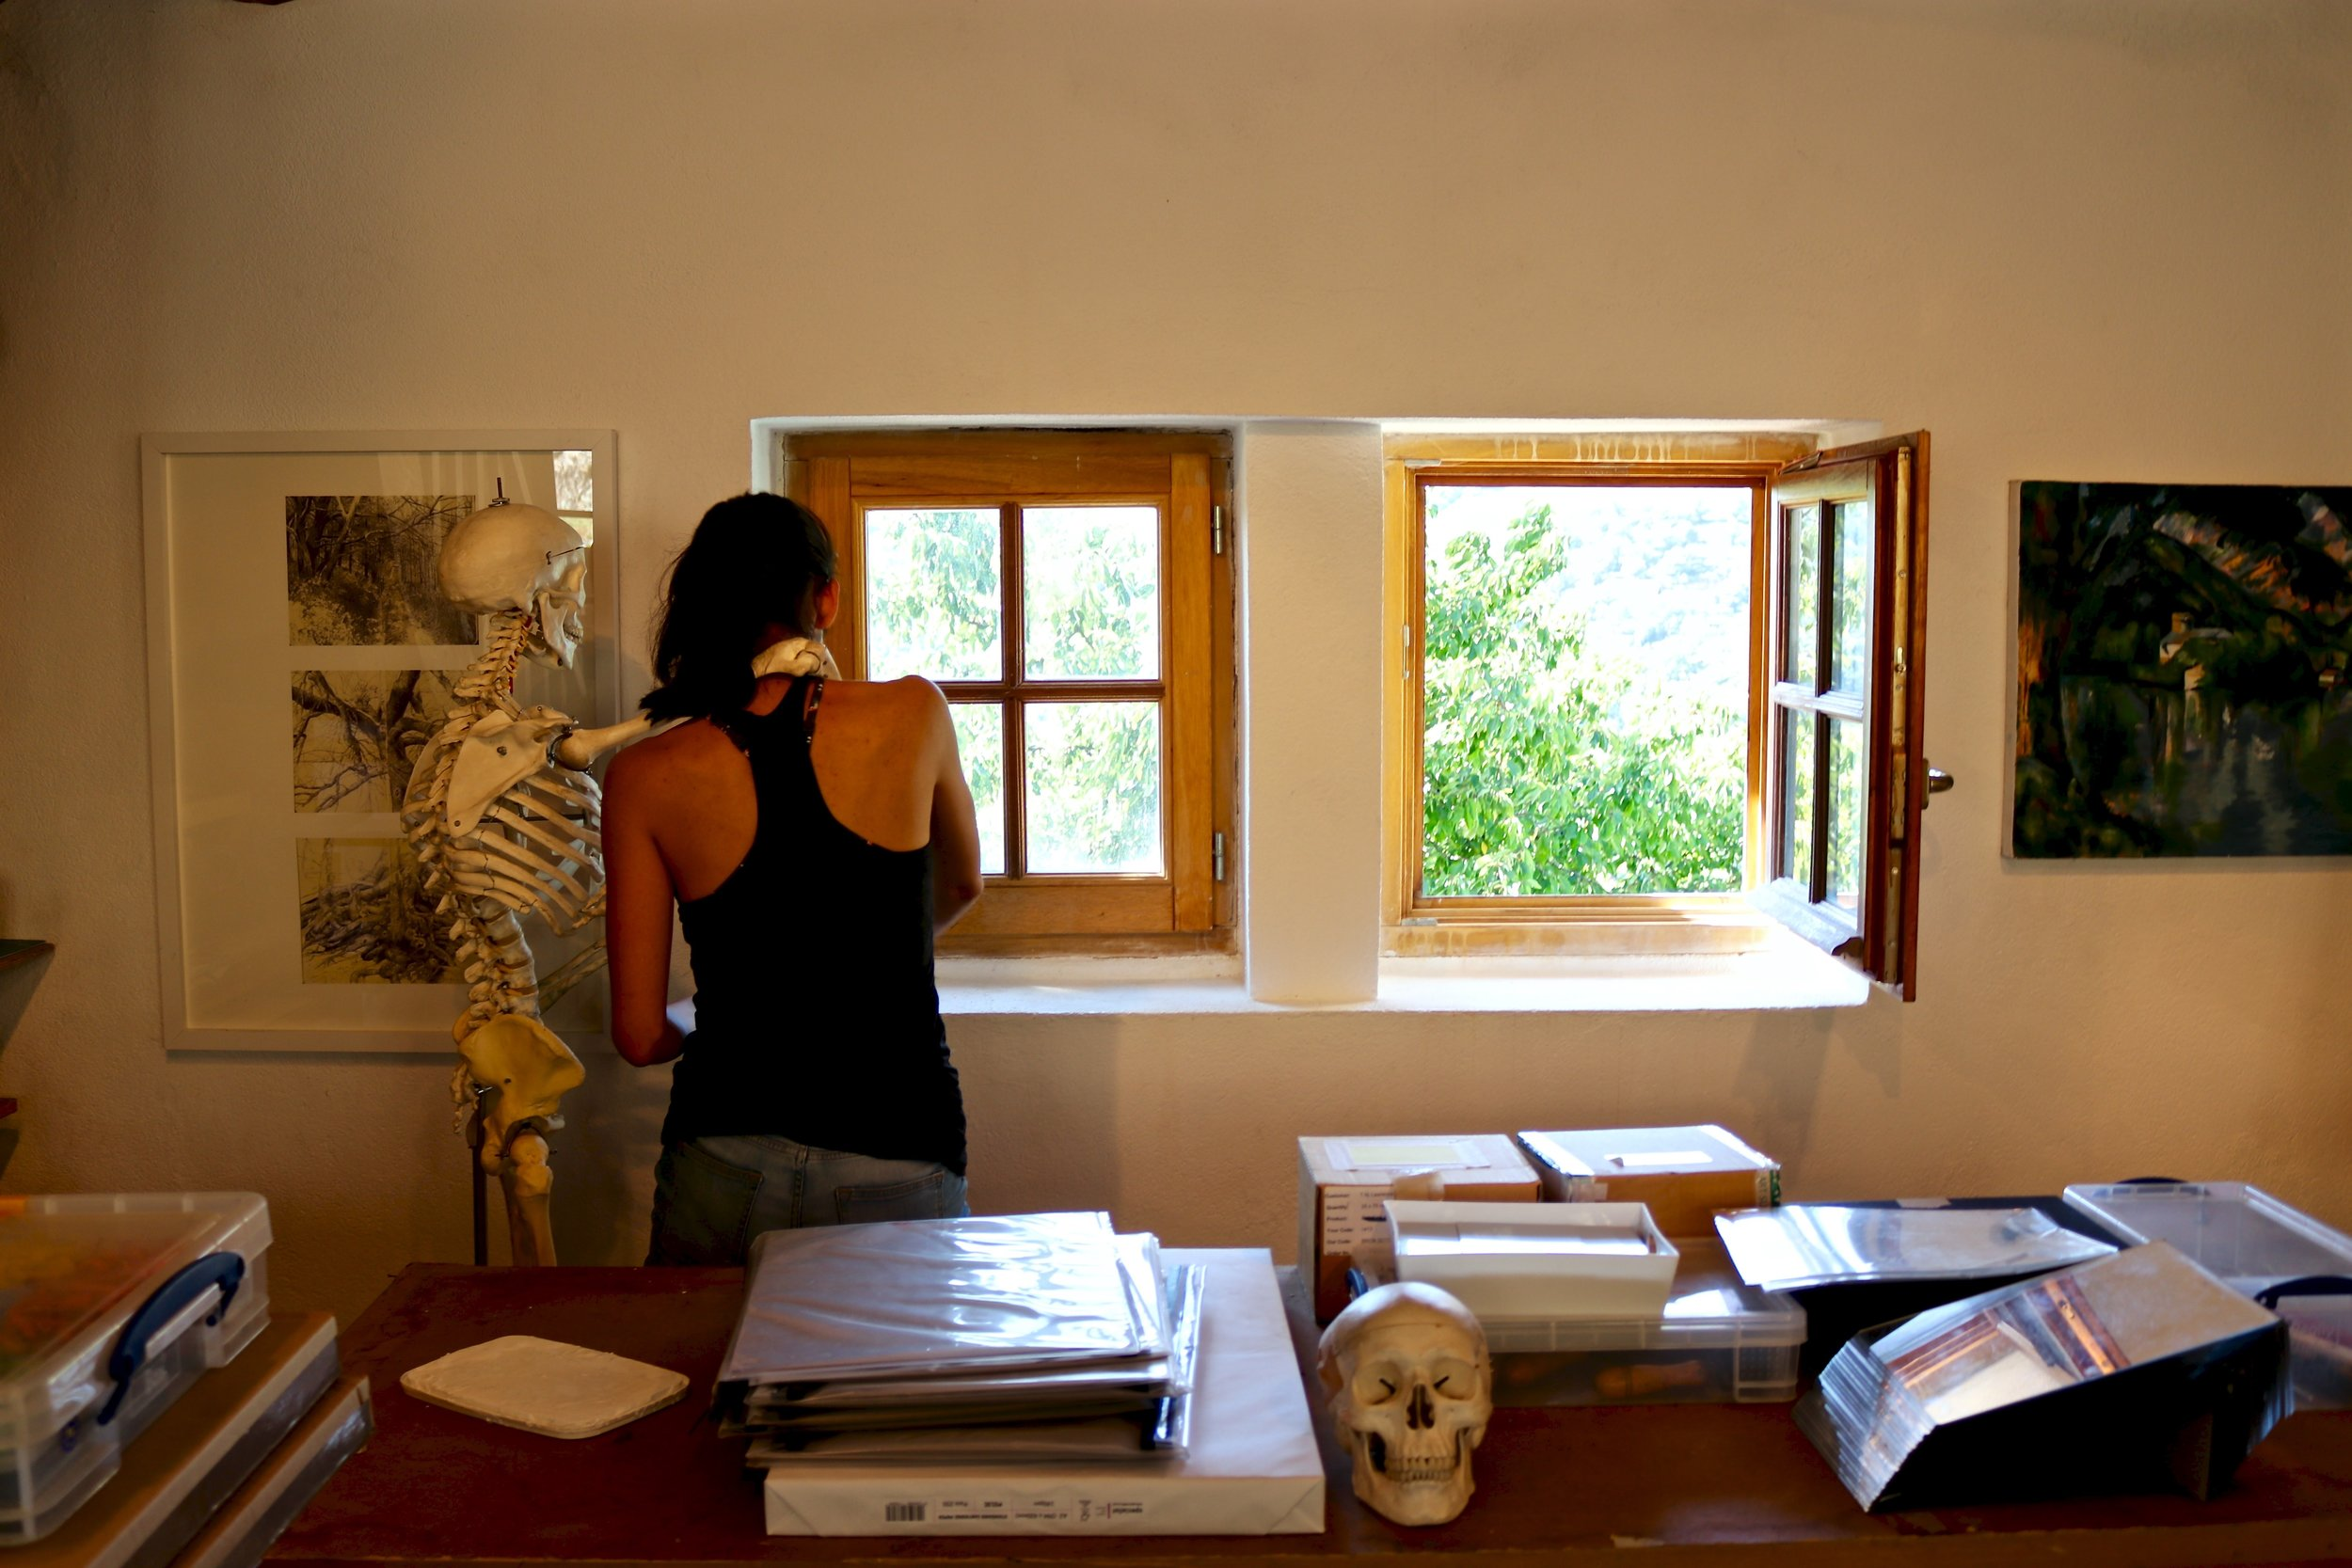 Some touch-ups to the walls have been added to lighten the rooms up. Here's Camila getting a helping hand from our resident skeleton.